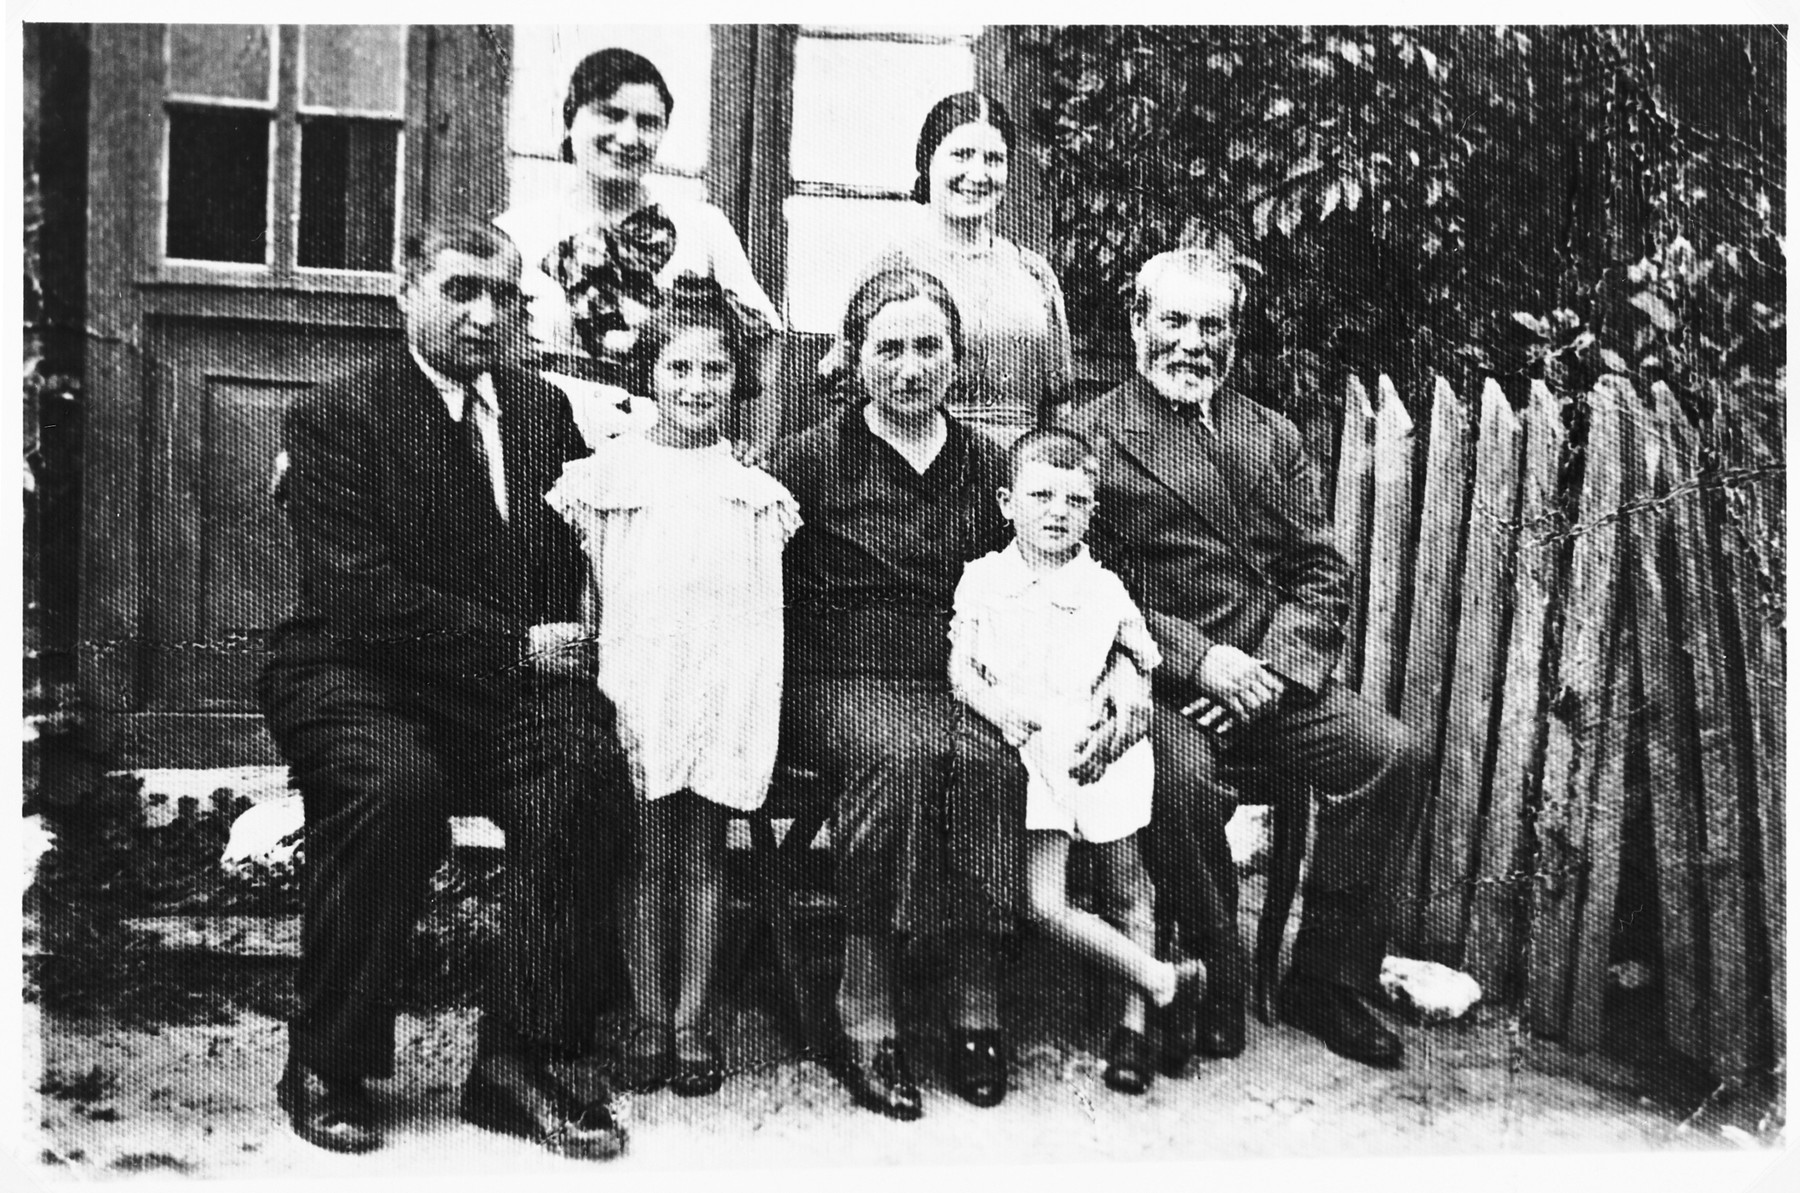 The Kejles family poses outside its home in Grodzisk.  Pictured from left to right: front row: Menashe Hirszfeld (a brother-in-law of Efraim Kejles visiting from Warsaw),Chayale Kejles (she perished in Treblinka), Riva Kejles, Shie Zoltak, and Efraim Kejles.  Back row: Rachel Kejles and Itke Kejles.